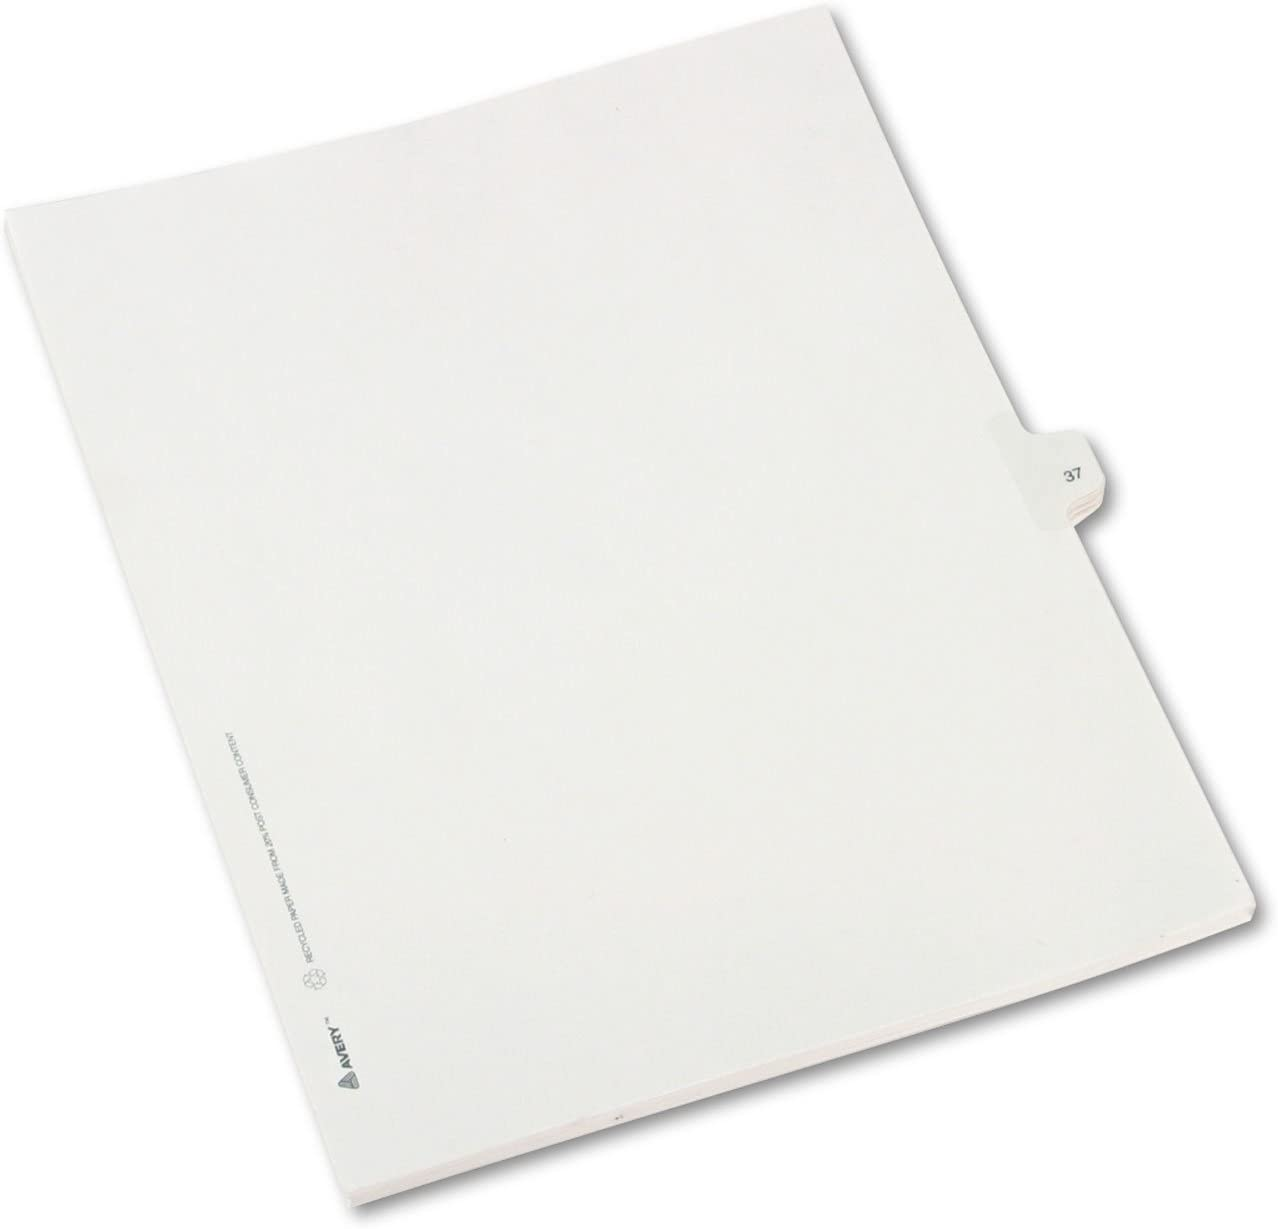 5% OFF Avery 82235 Allstate-Style Legal Exhibit Divider Side Max 90% OFF Title Tab